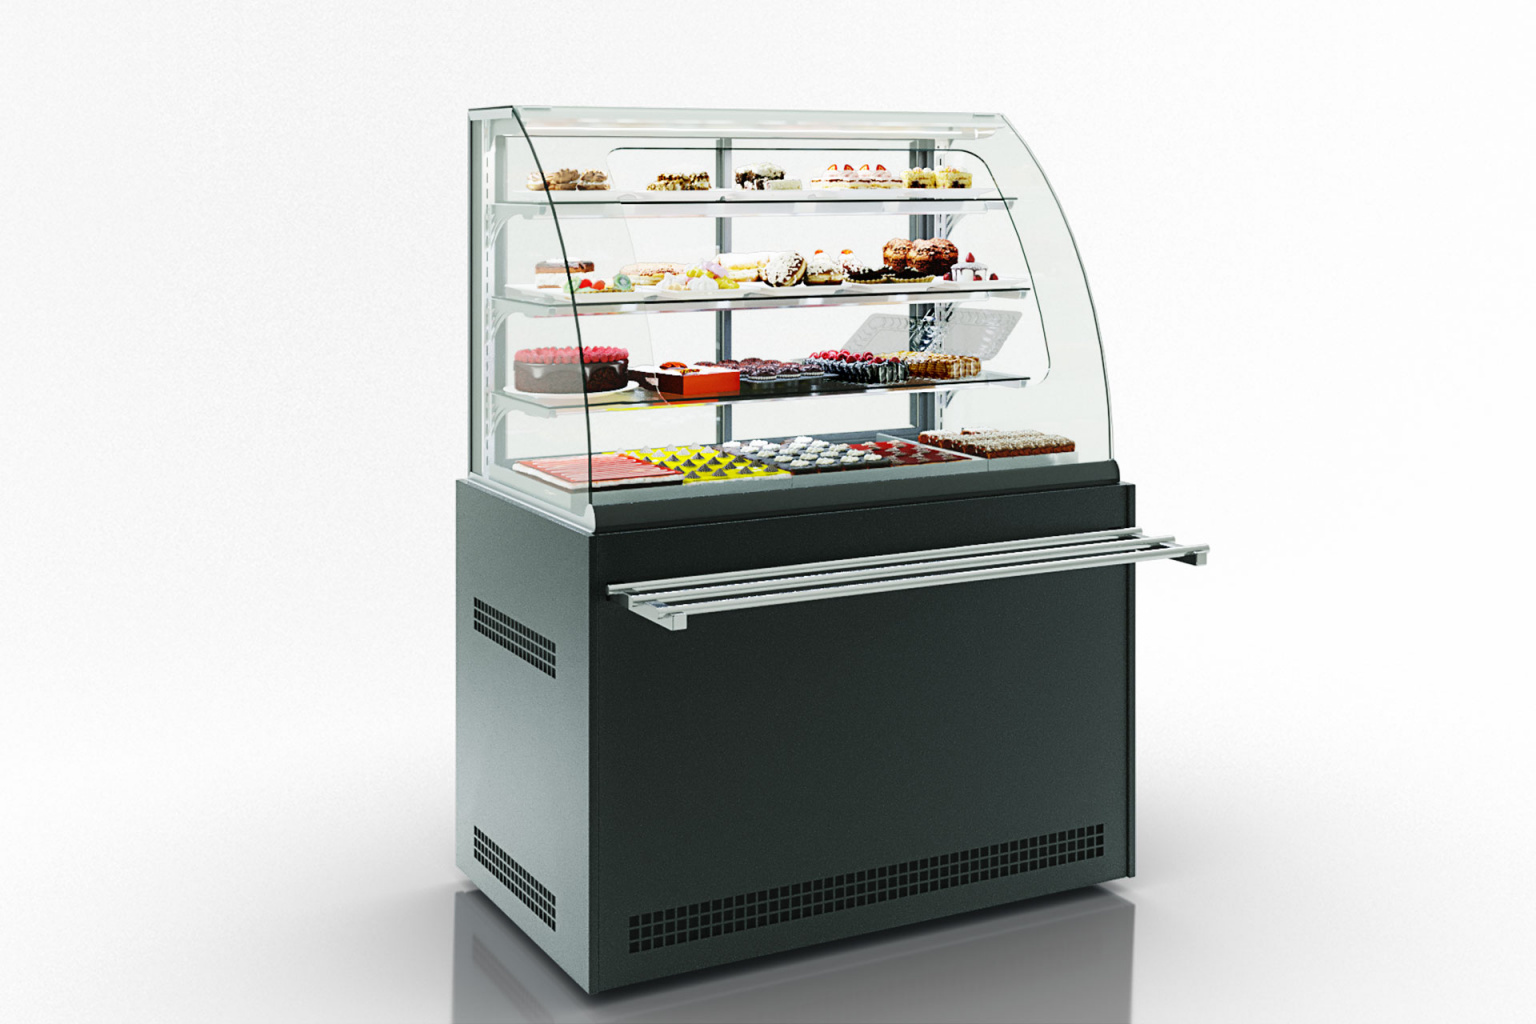 מקרר עוגות DAKOTA GA 085 PATISSERIE SELF SL A